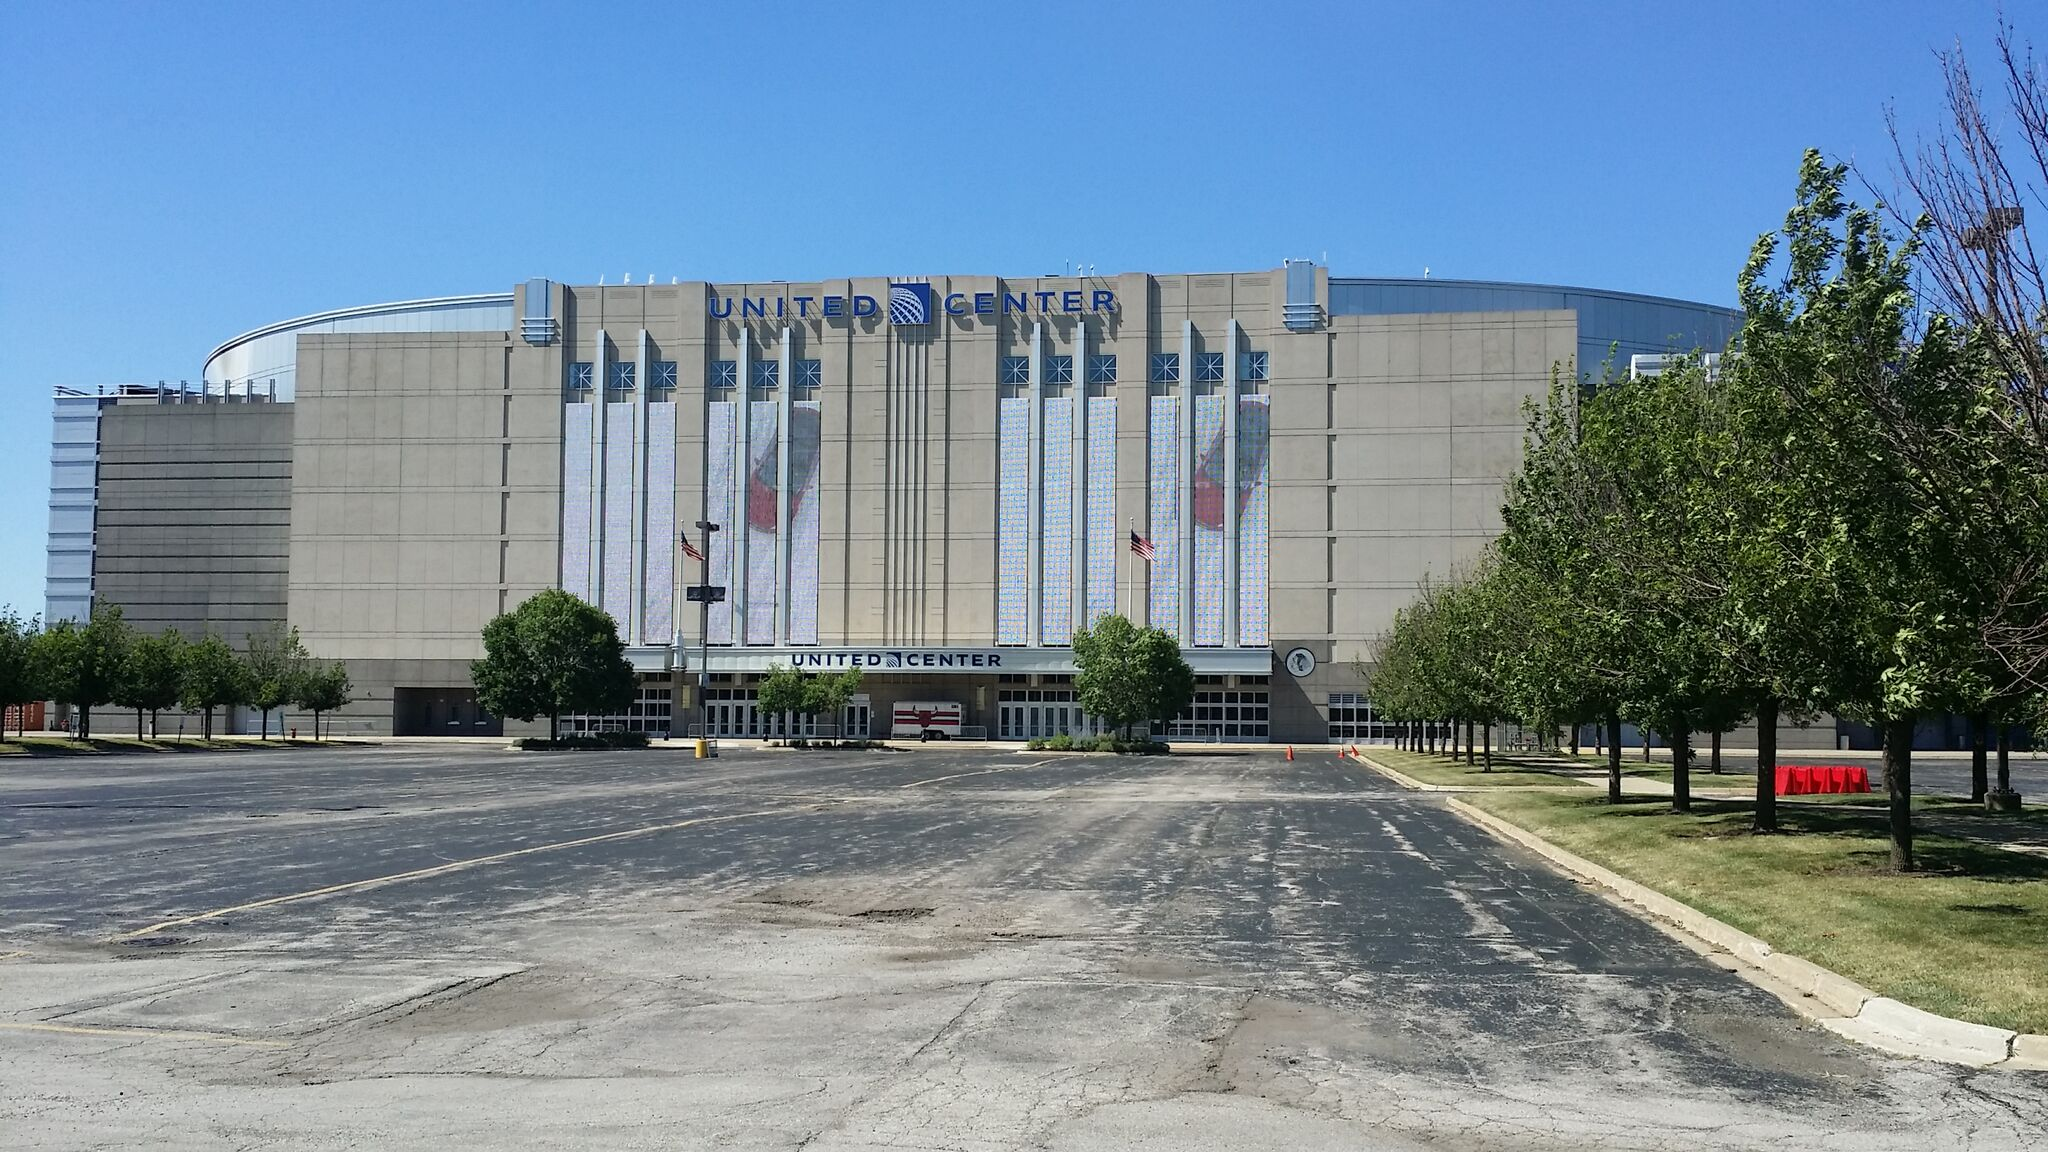 Exterior: United Center – Chicago Bulls